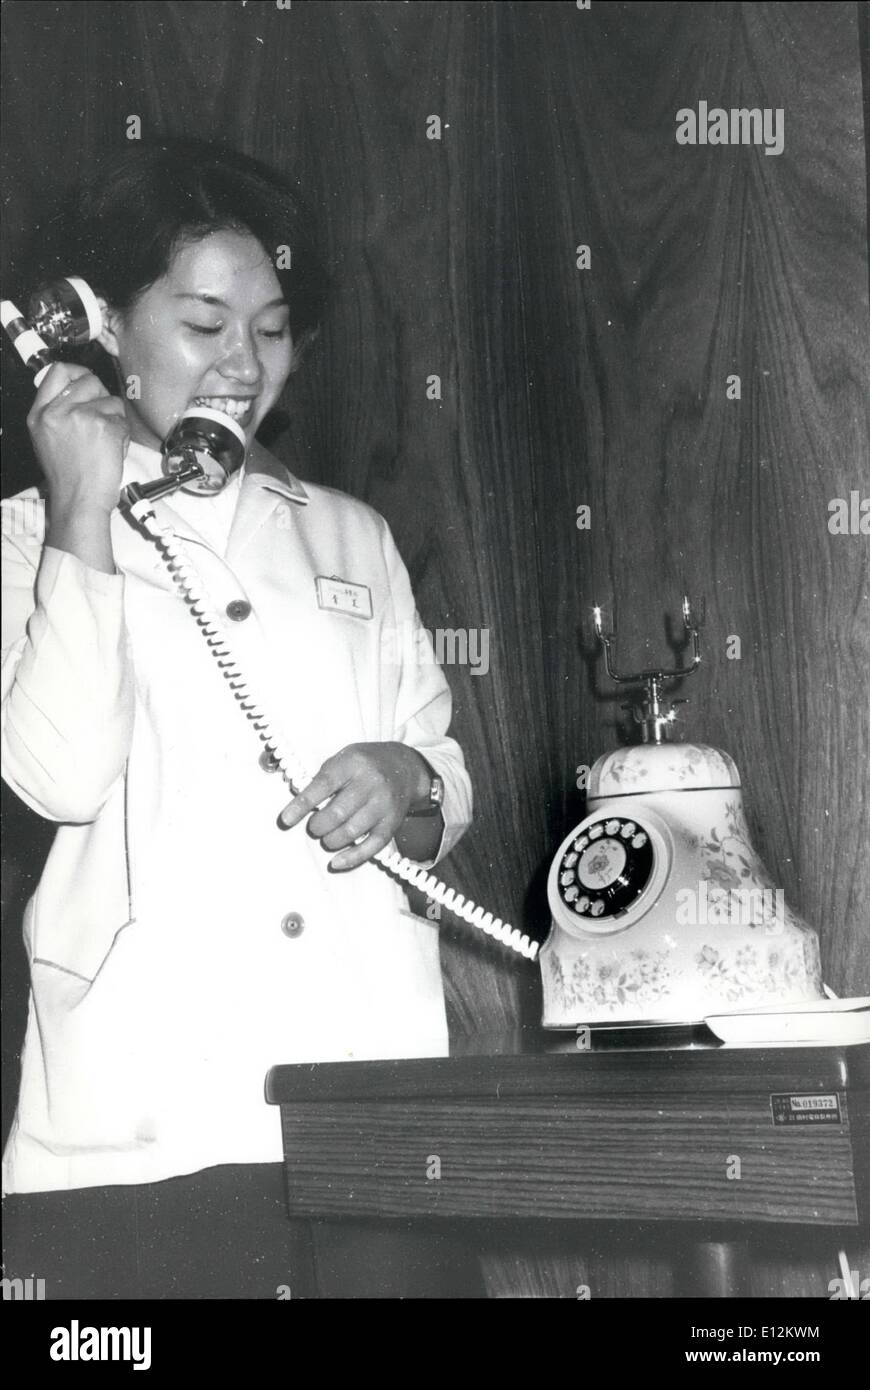 Feb. 24, 2012 - Japanese China Telephones,: One of the new type decorative telephones made of unbreakable china, being used by a Tokyo girl. The Telephones are on sale for Yen 80,000 each (£ 50.00) - Stock Image